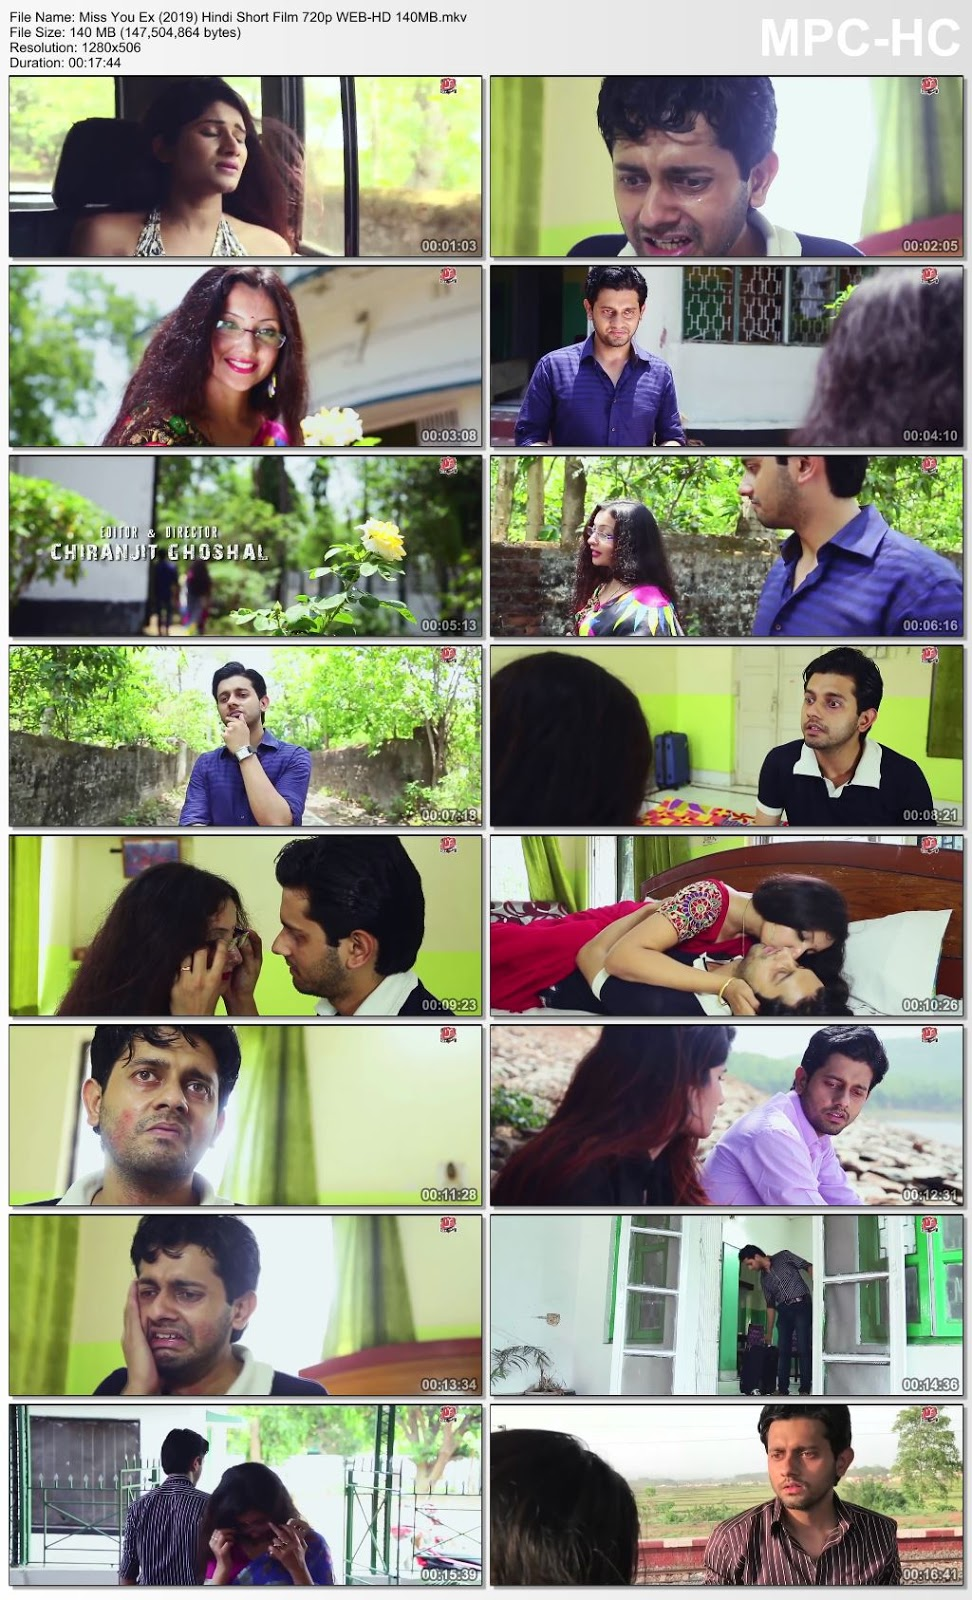 Miss You Ex (2019) Hindi Short Film 720p WEB-HD 140MB Desirehub